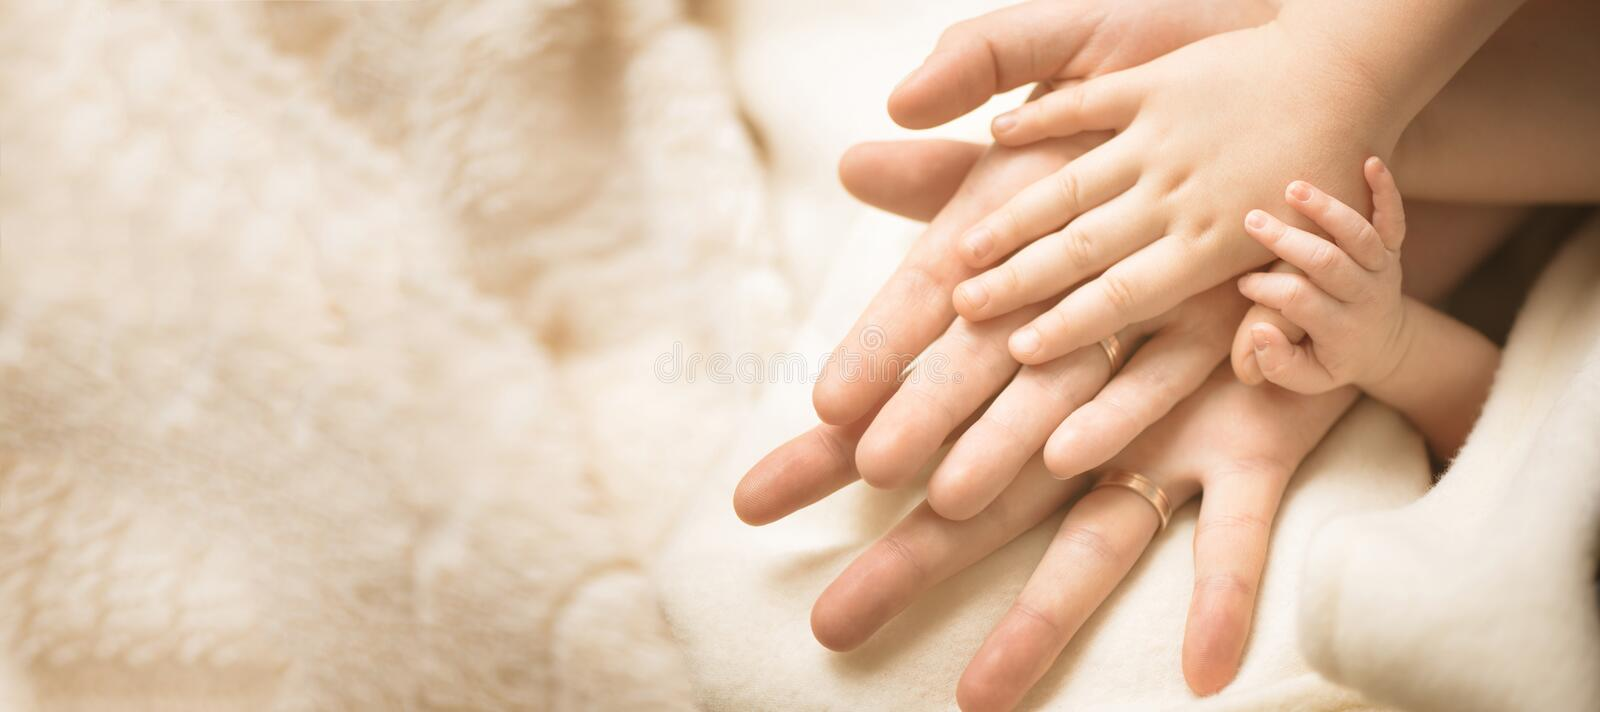 Newborn child hand. Closeup of baby hand into parents hands. Family, maternity and birth concept. Banner royalty free stock image